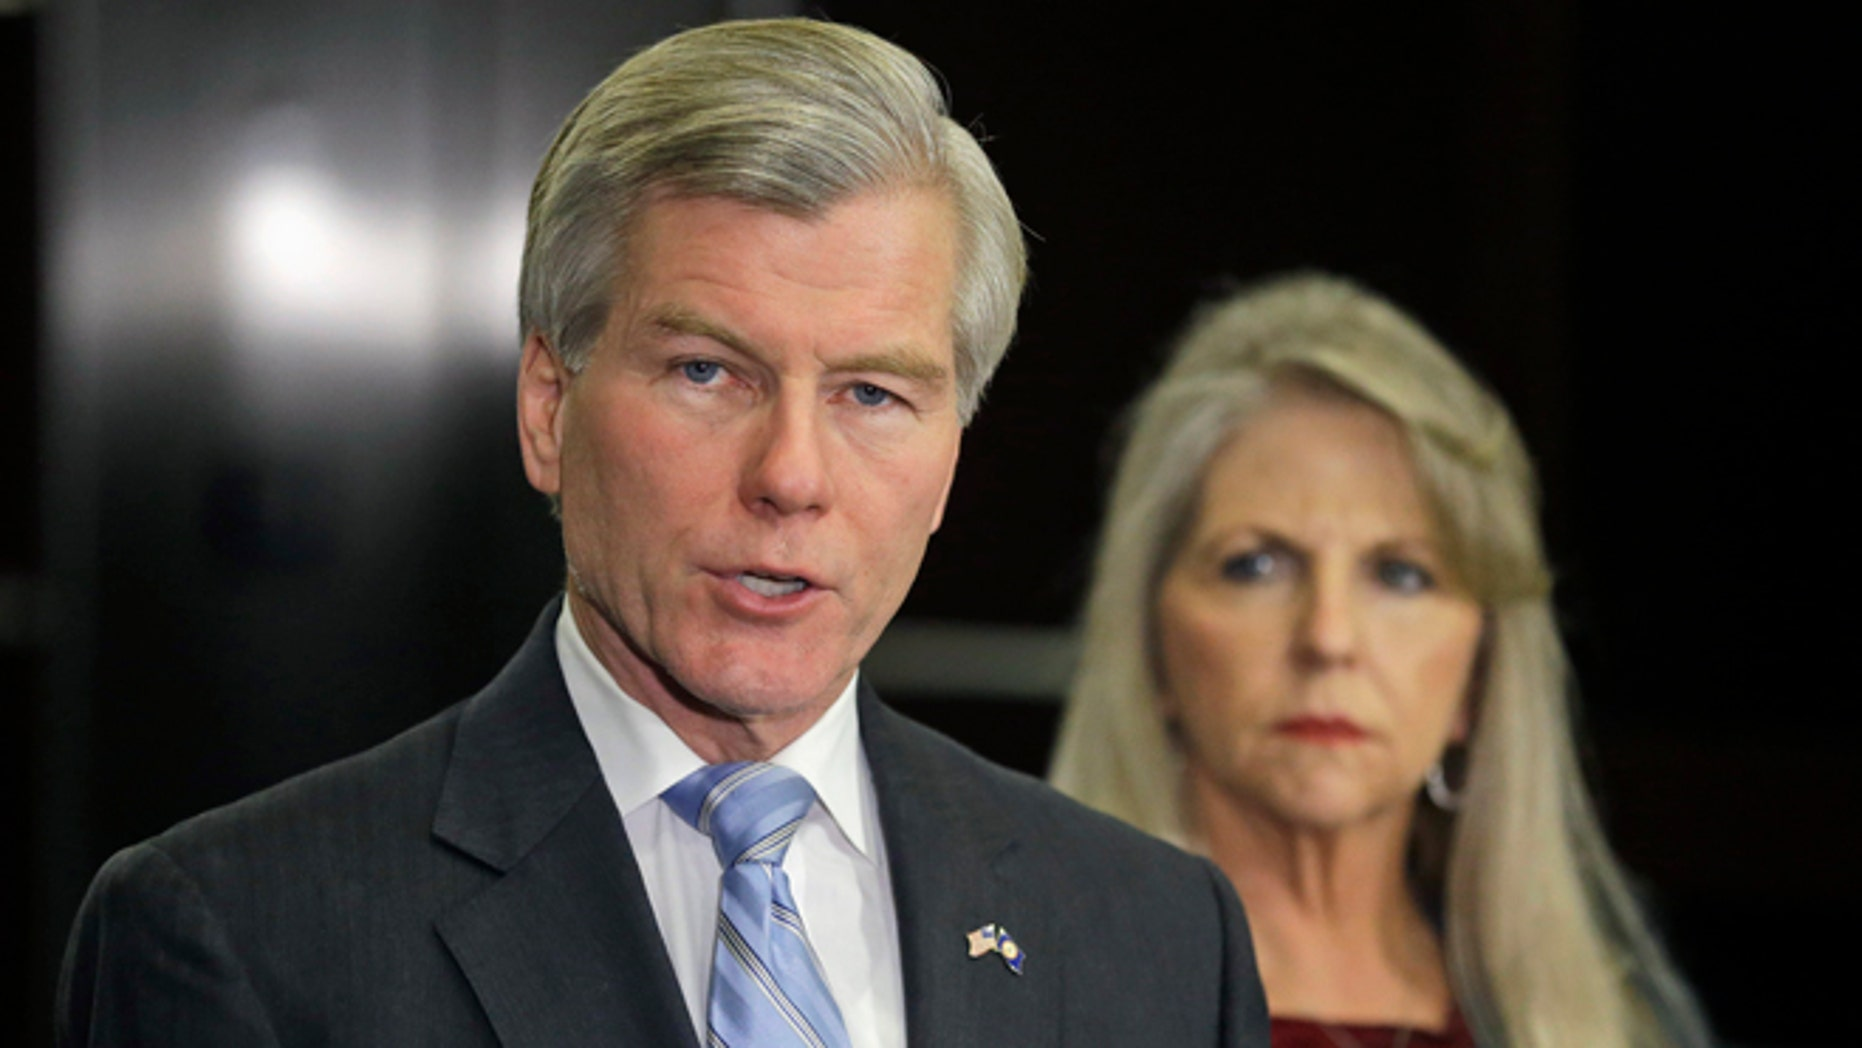 FILE: Tuesday, Jan. 21, 2014: Former Virginia Gov. Bob McDonnell and wife Maureen at a news conference in Richmond, Va.